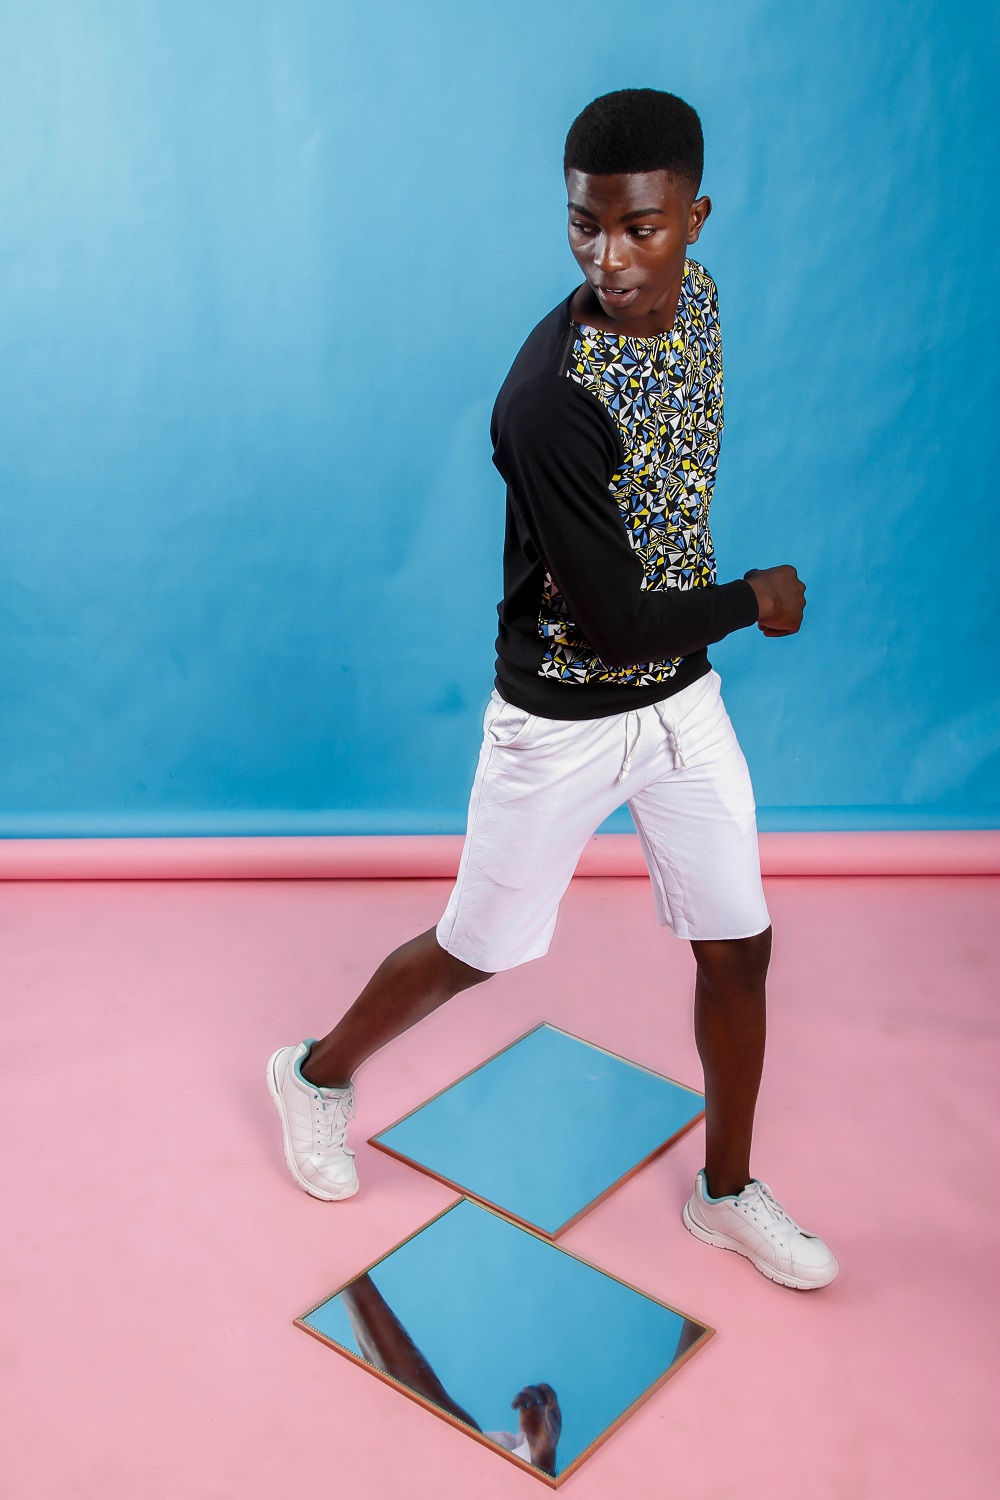 GDWN Released a Street Wear Collection You'll Actually Want to Wear Everyday